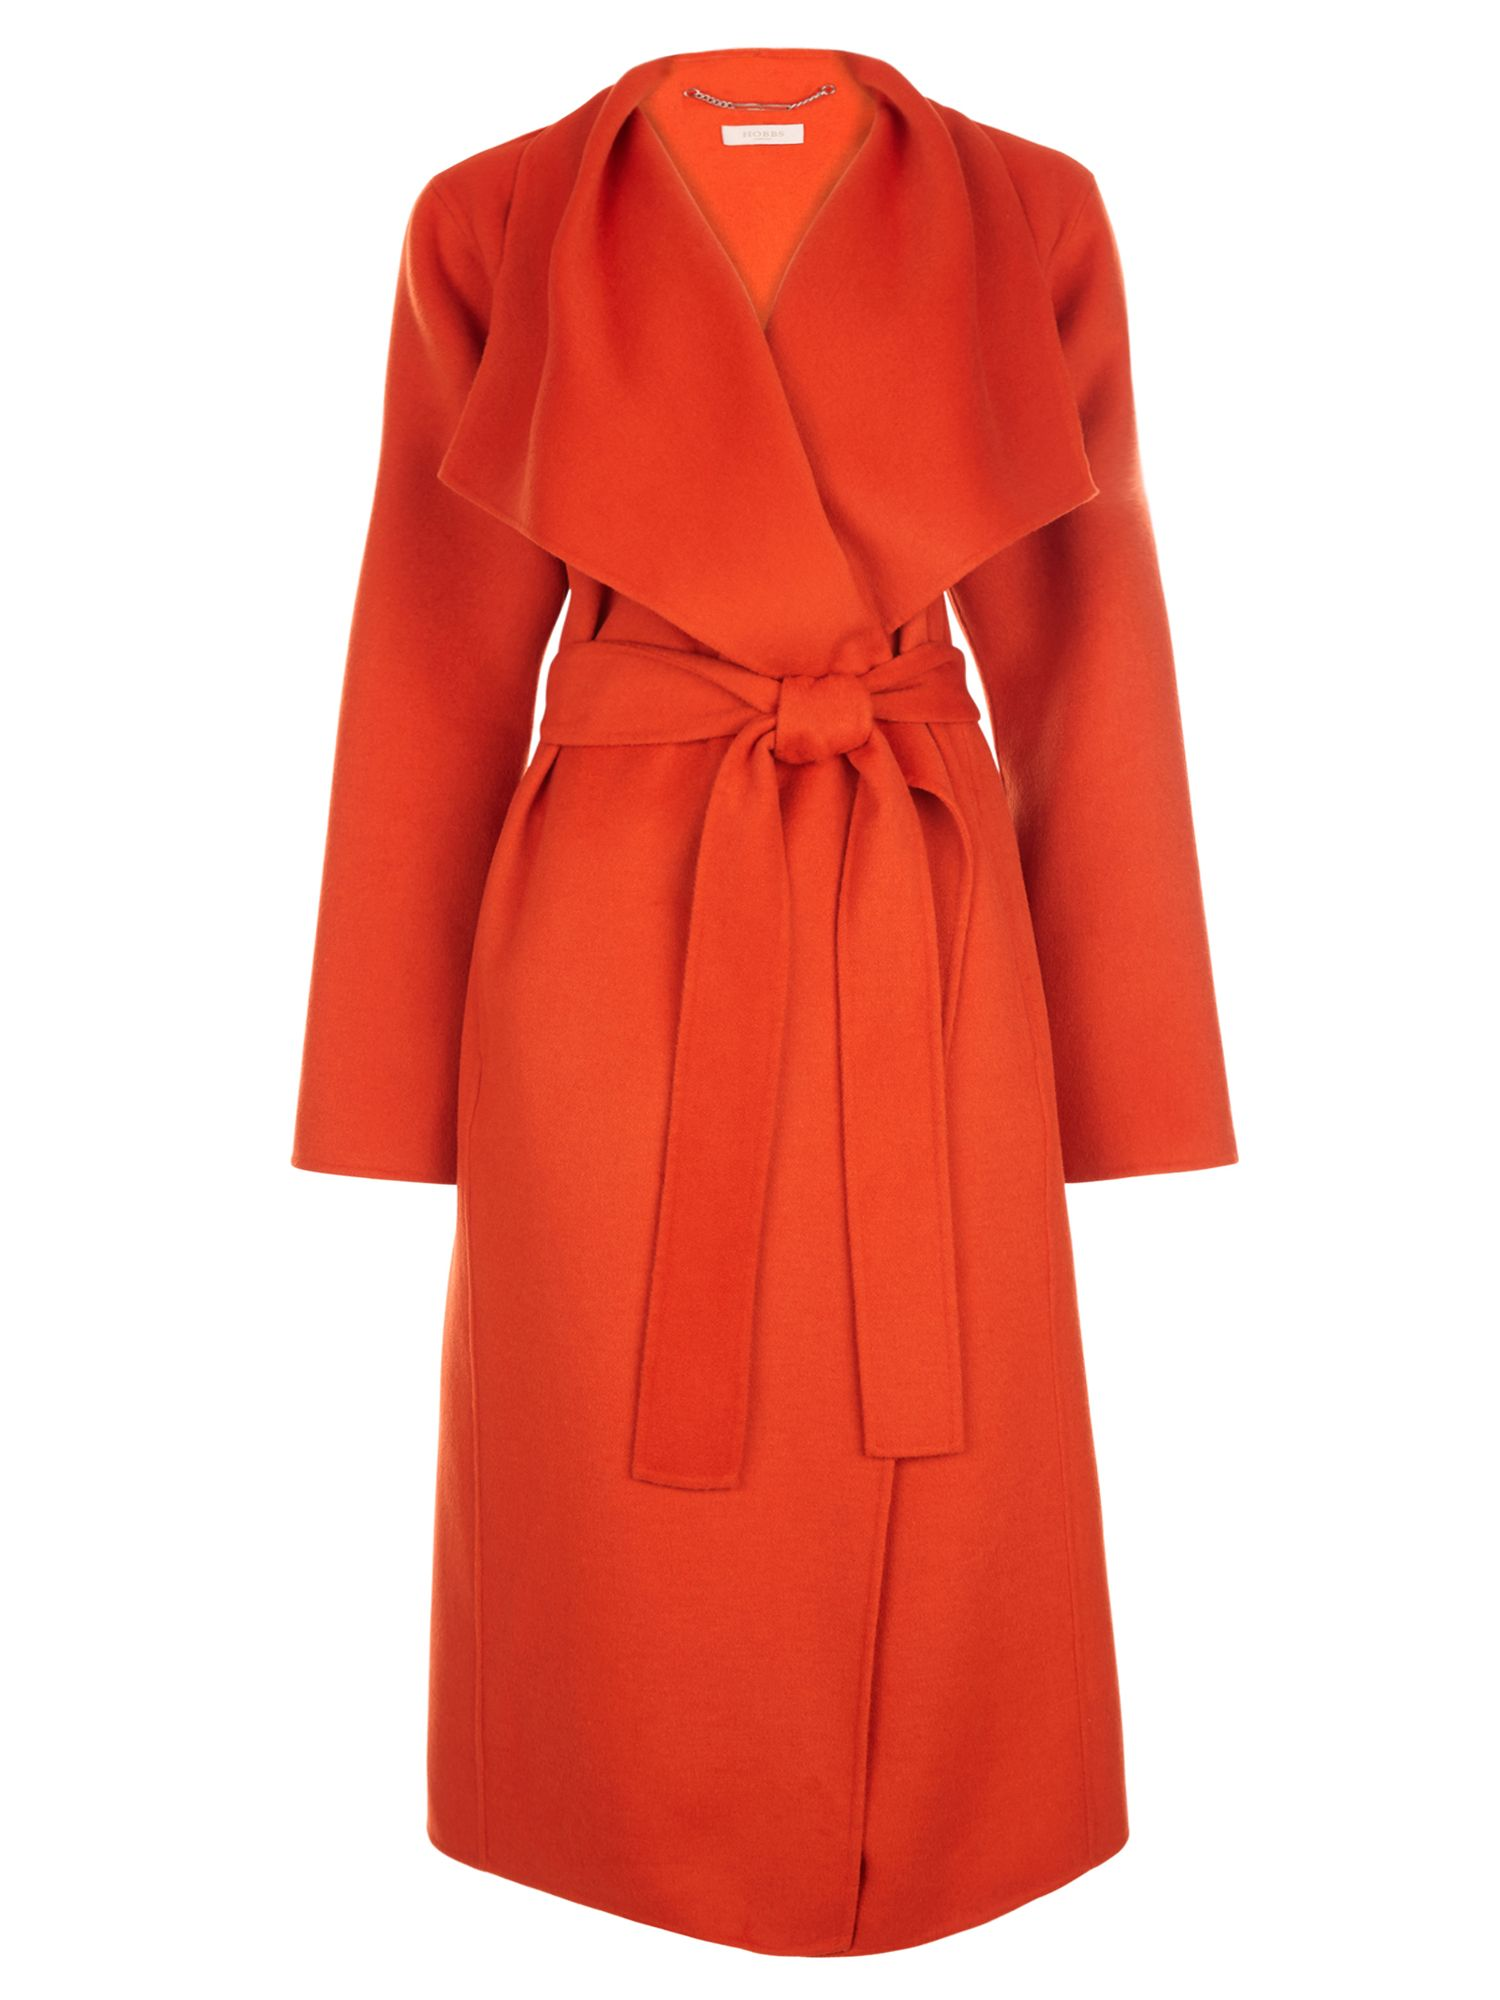 Hobbs Odelia Coat, Orange